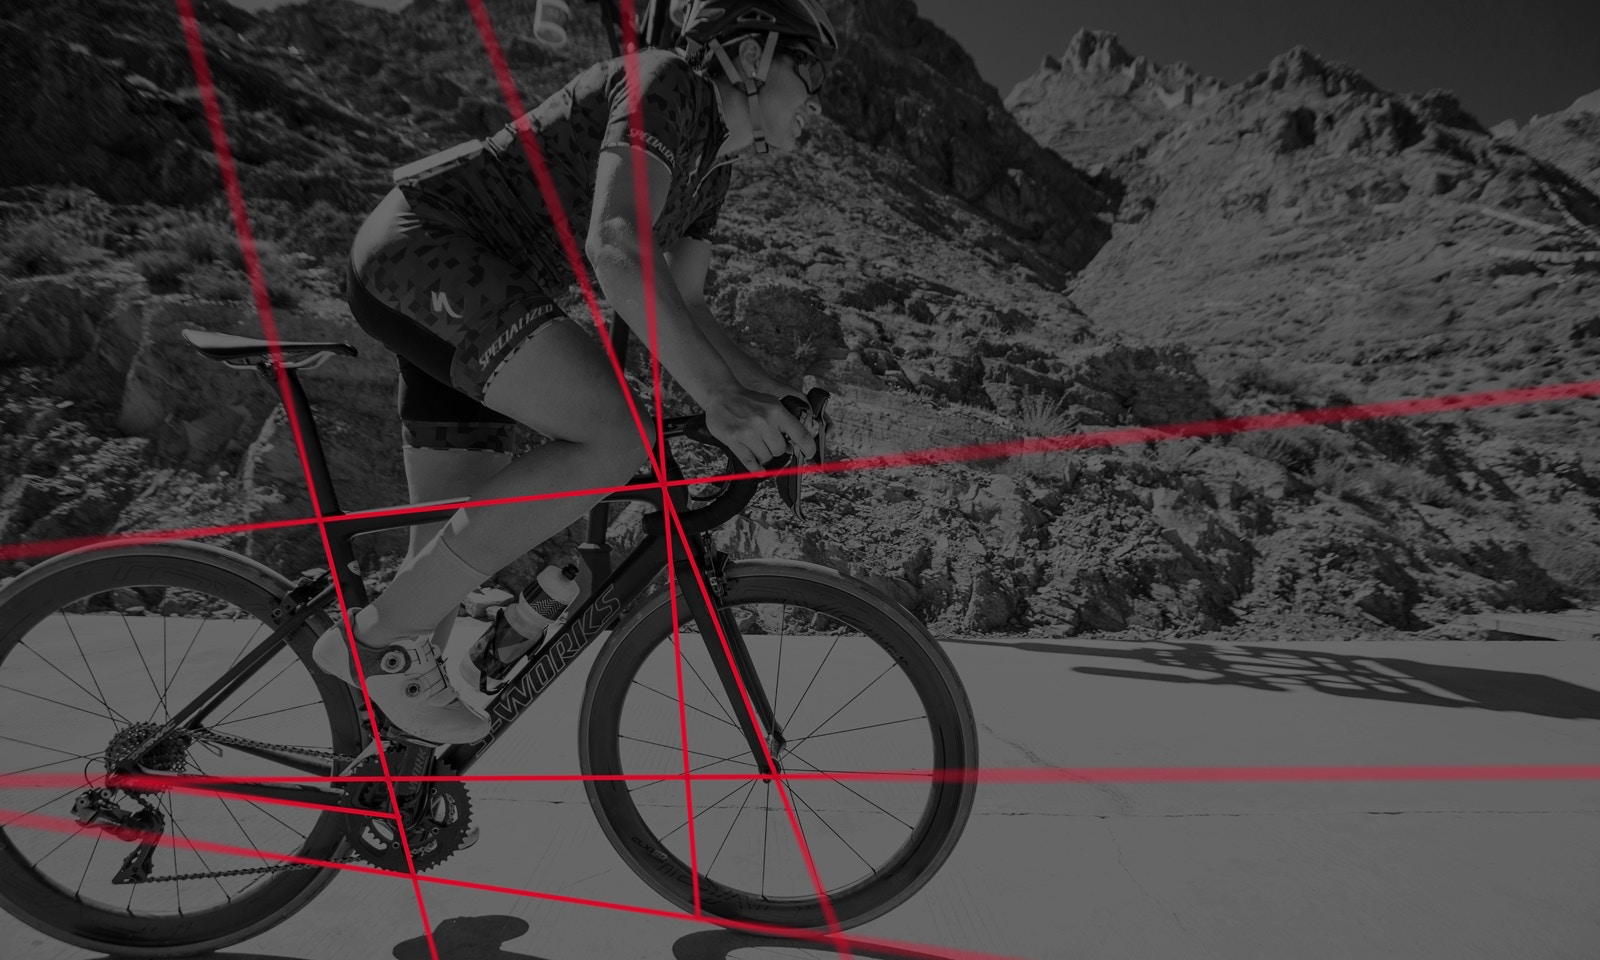 bb9f6825145e Understanding Bike Geometry Charts: What They Mean and How To Read Them